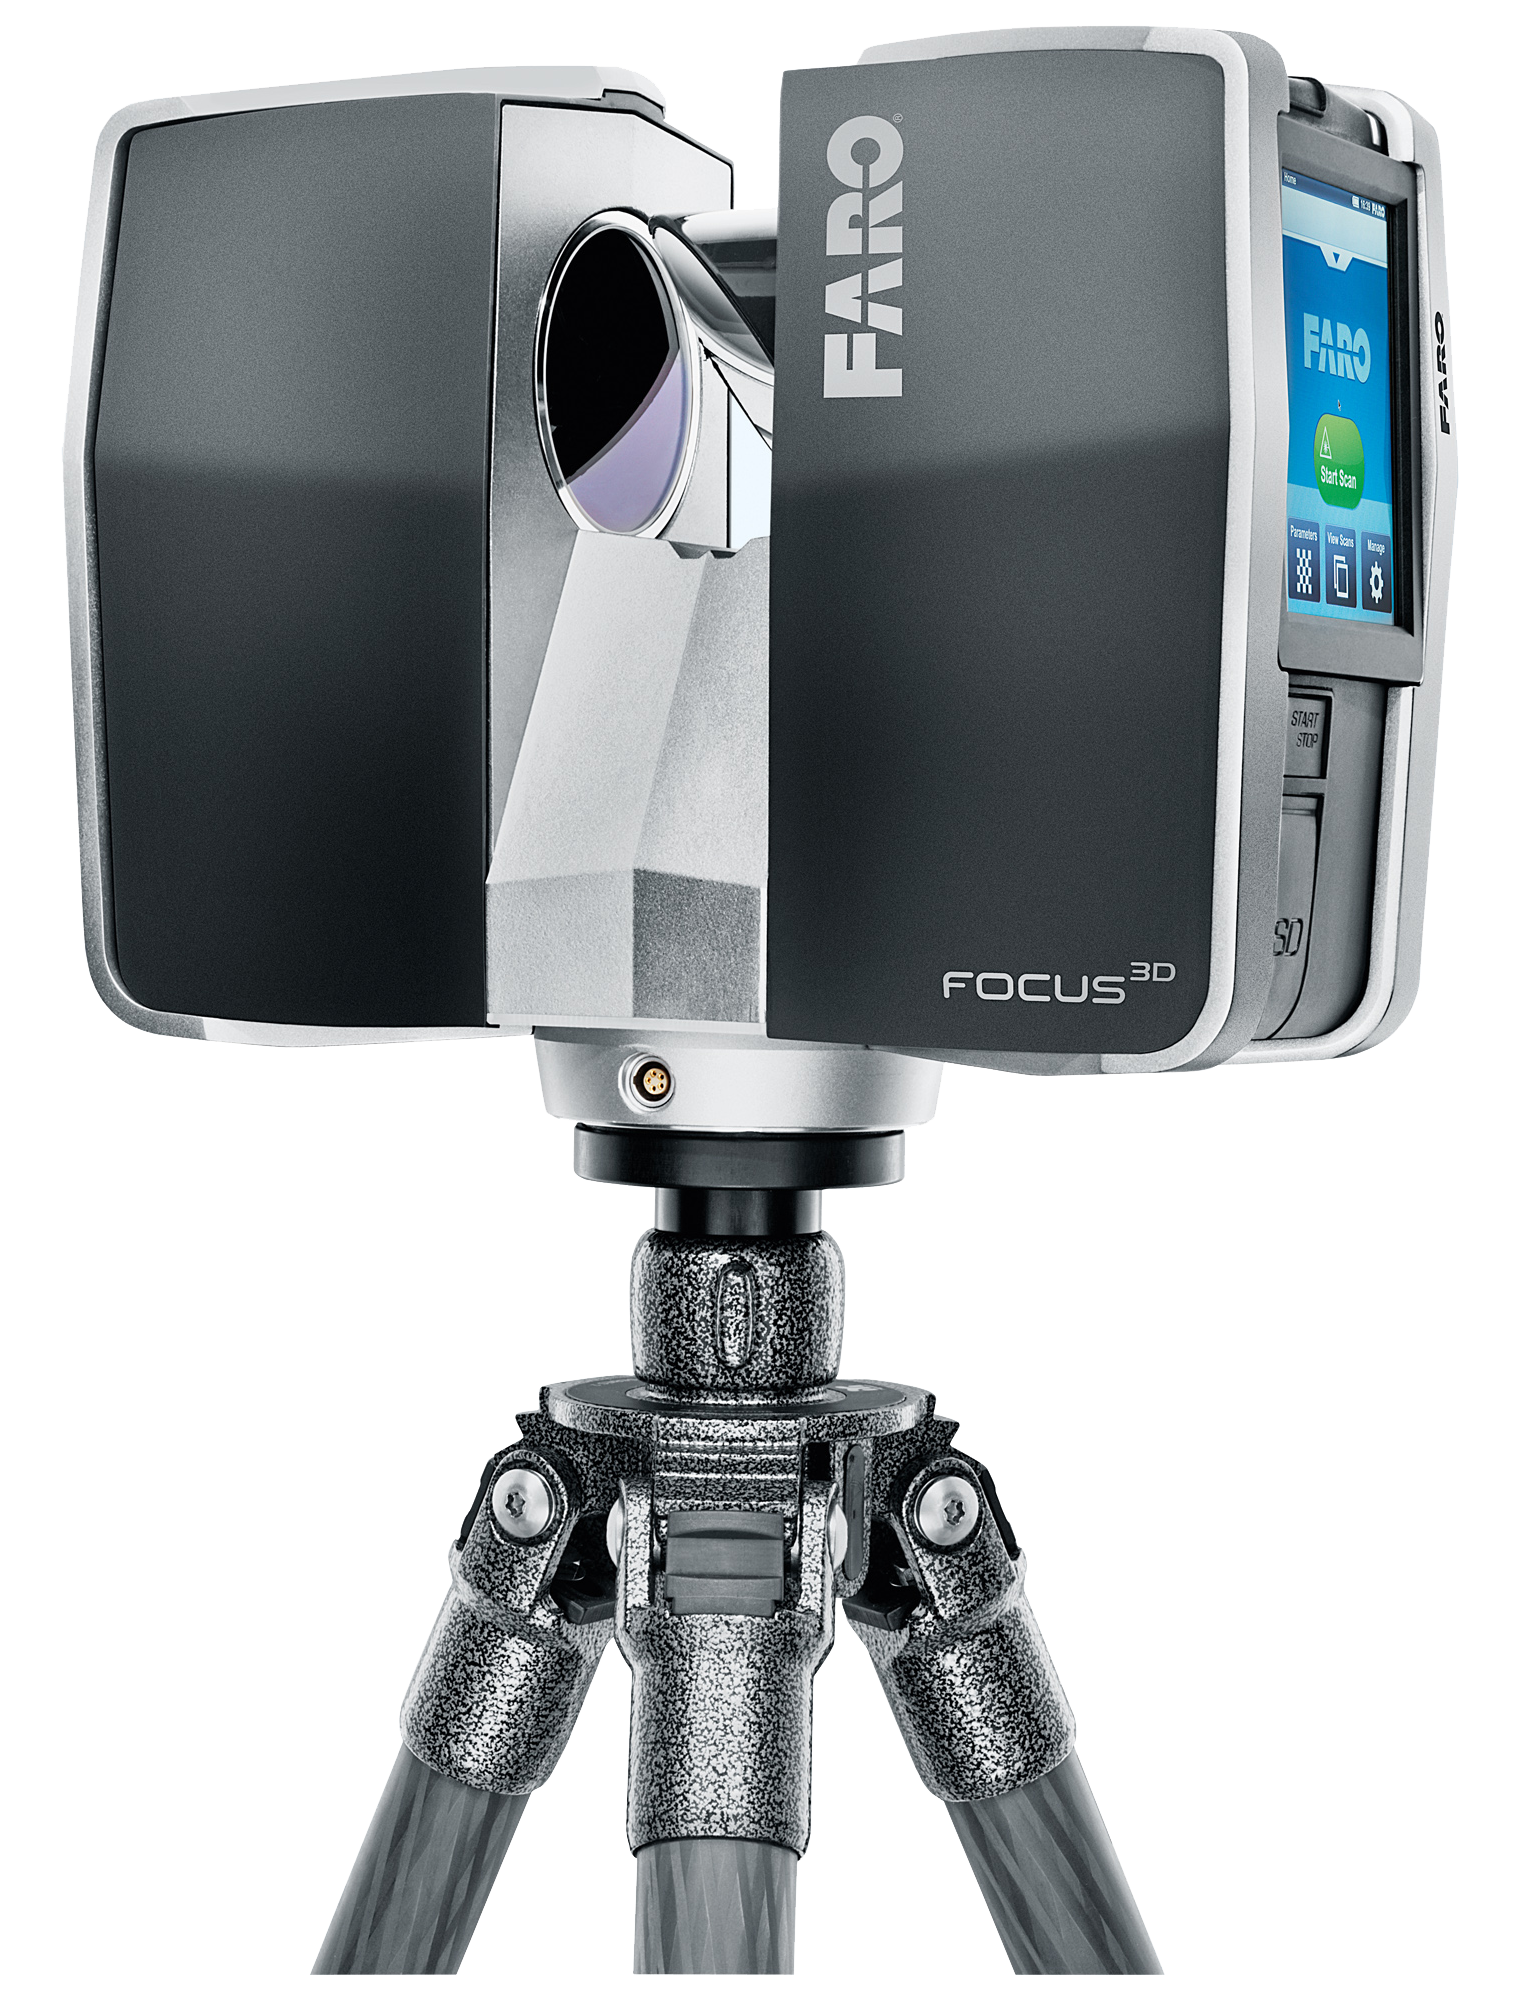 Rent the FARP Focus3D Laser Scanner